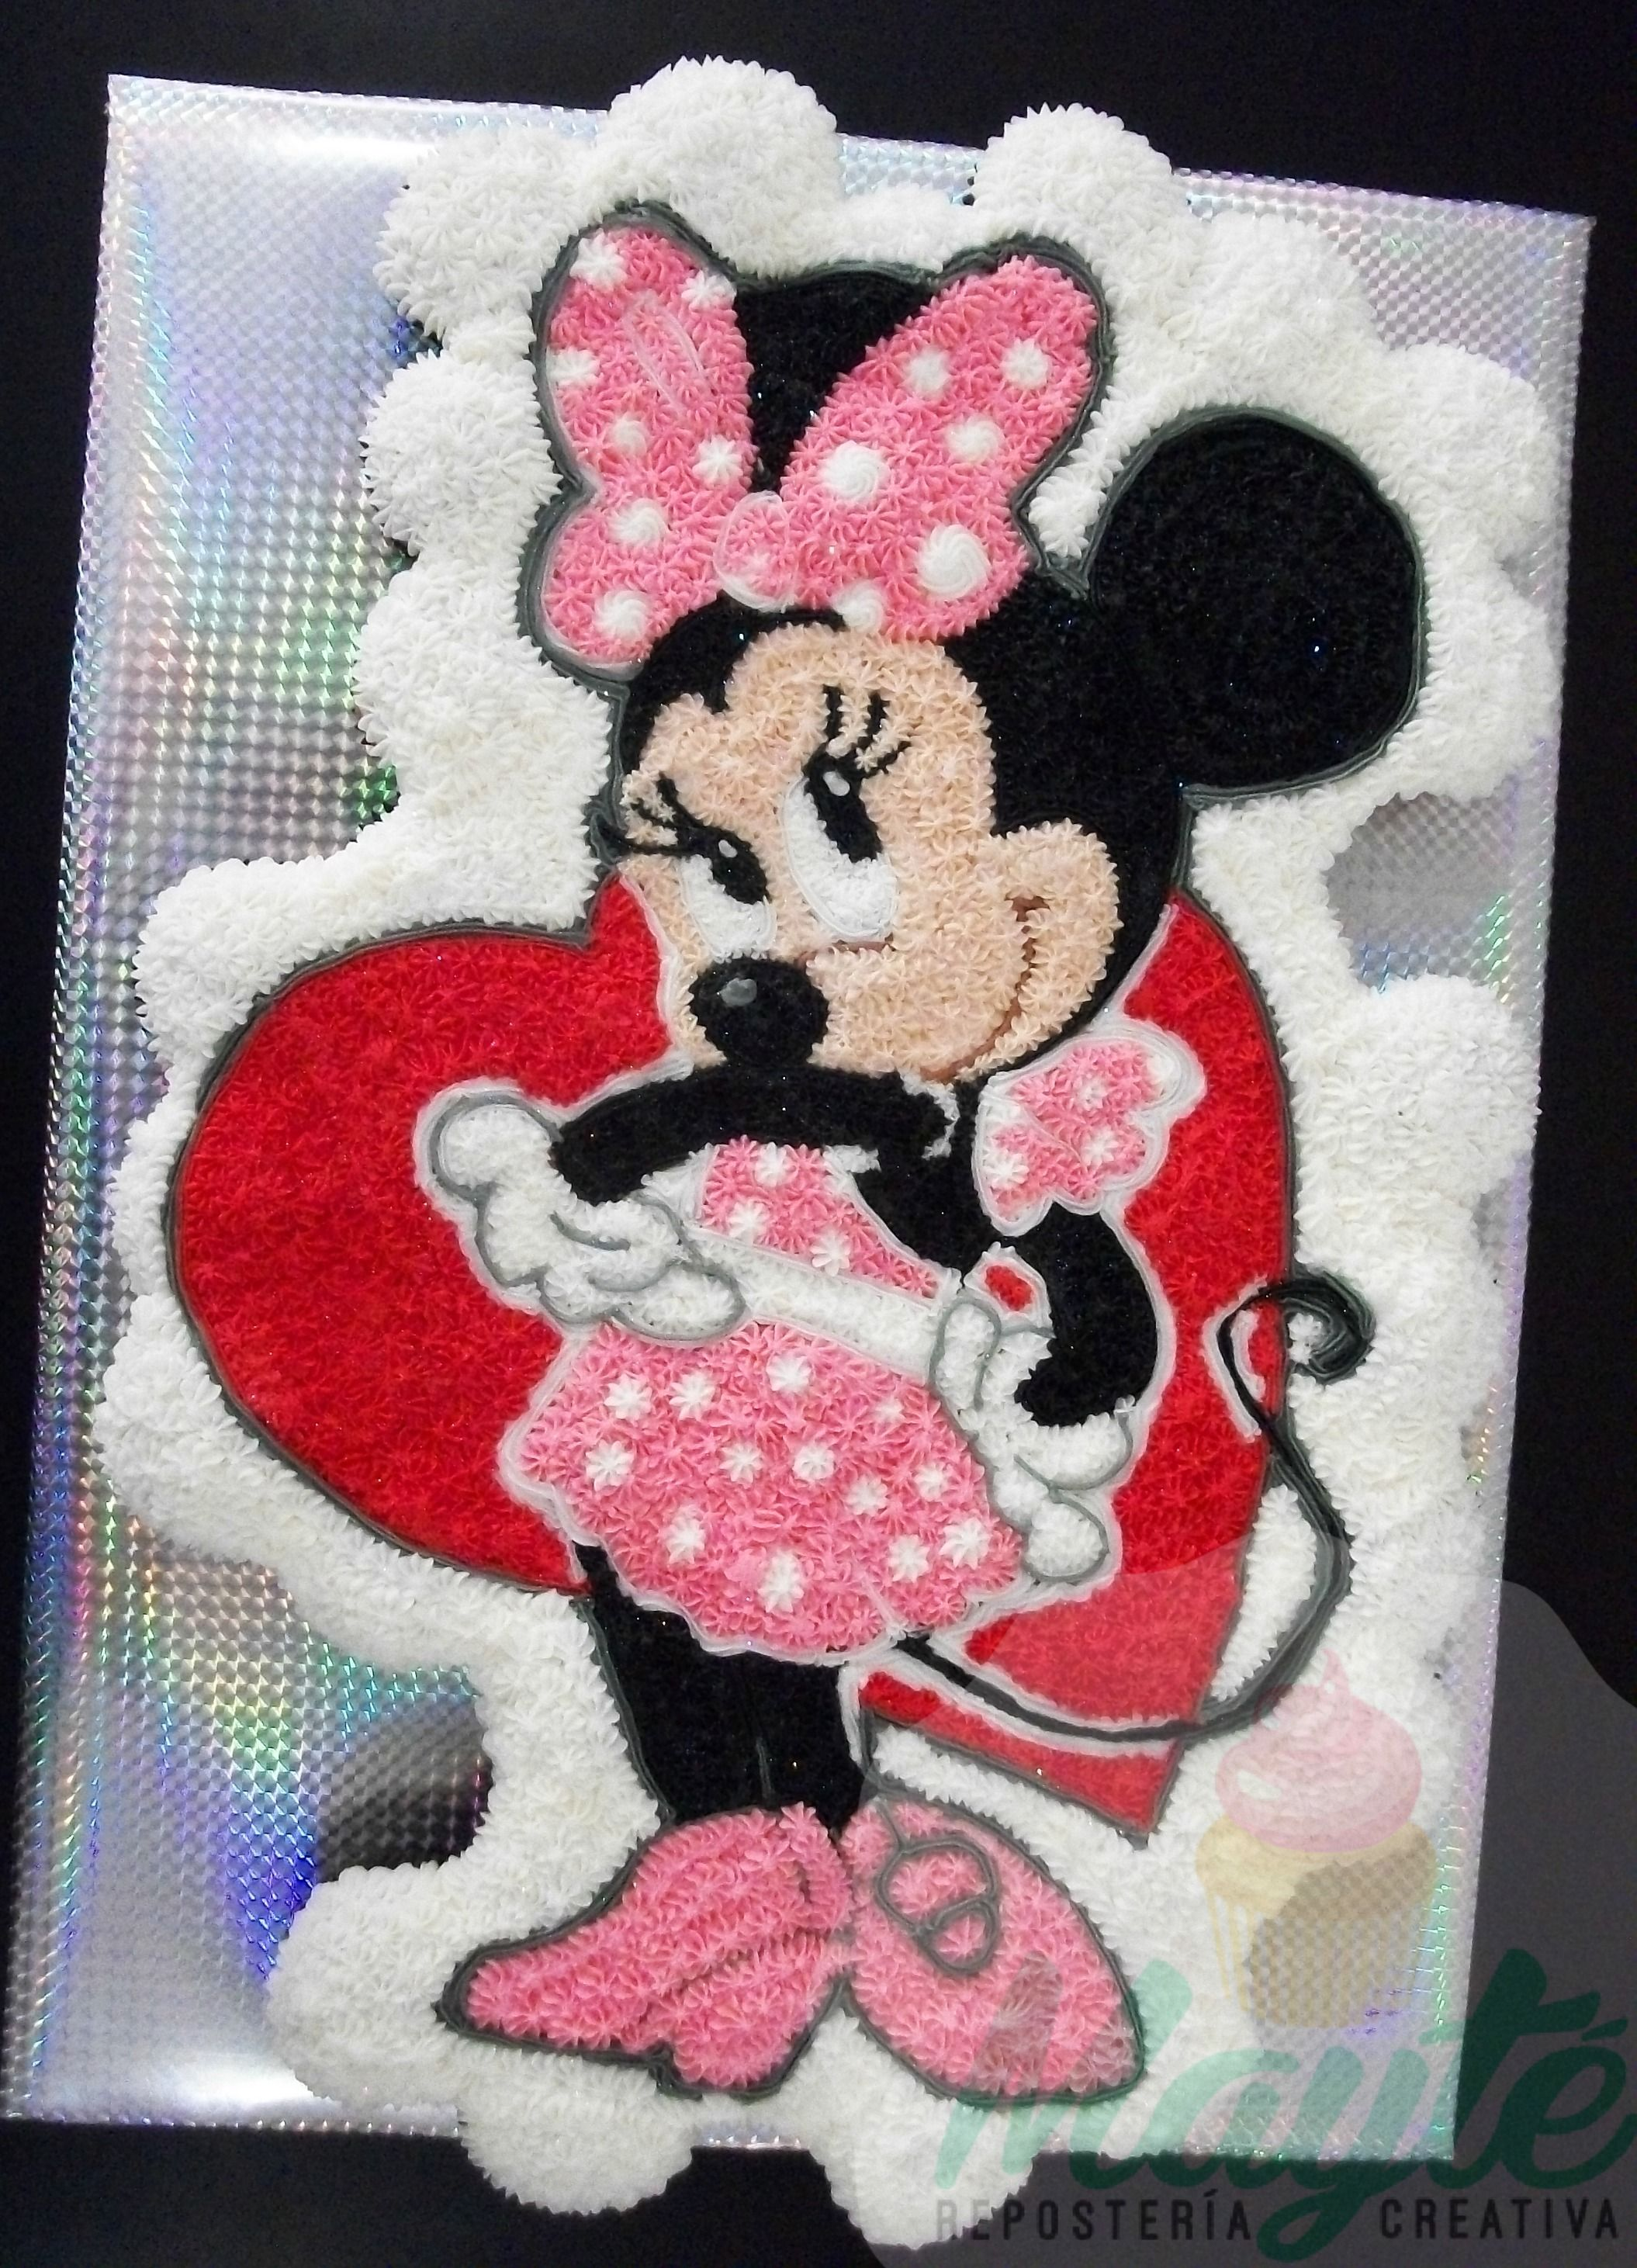 Pin by +77752514387 on торты 1 Pinterest - Minnie Mouse Halloween Decorations